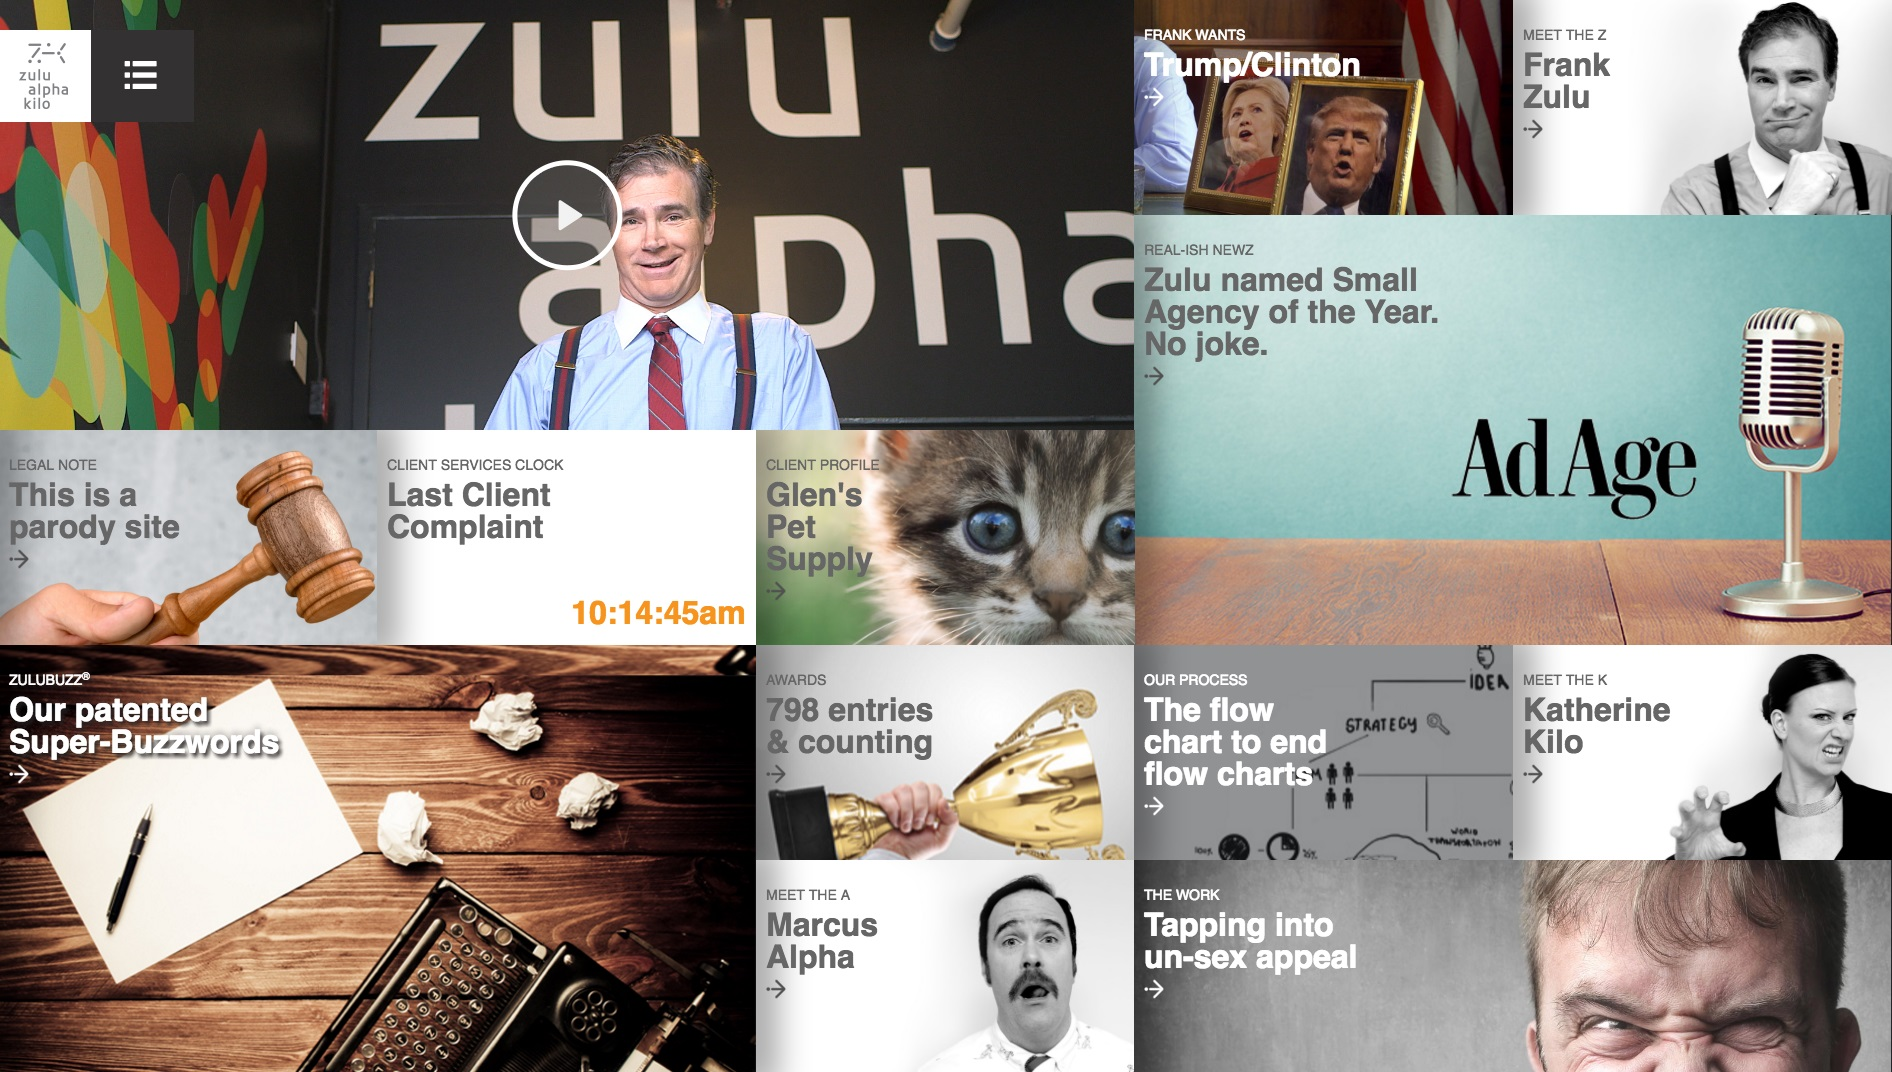 Zulu mocks the sameness of agency websites with a fun sendup of industry clichés complete with fictional co-founders. It was voted one of the top ten agency sites in the world.